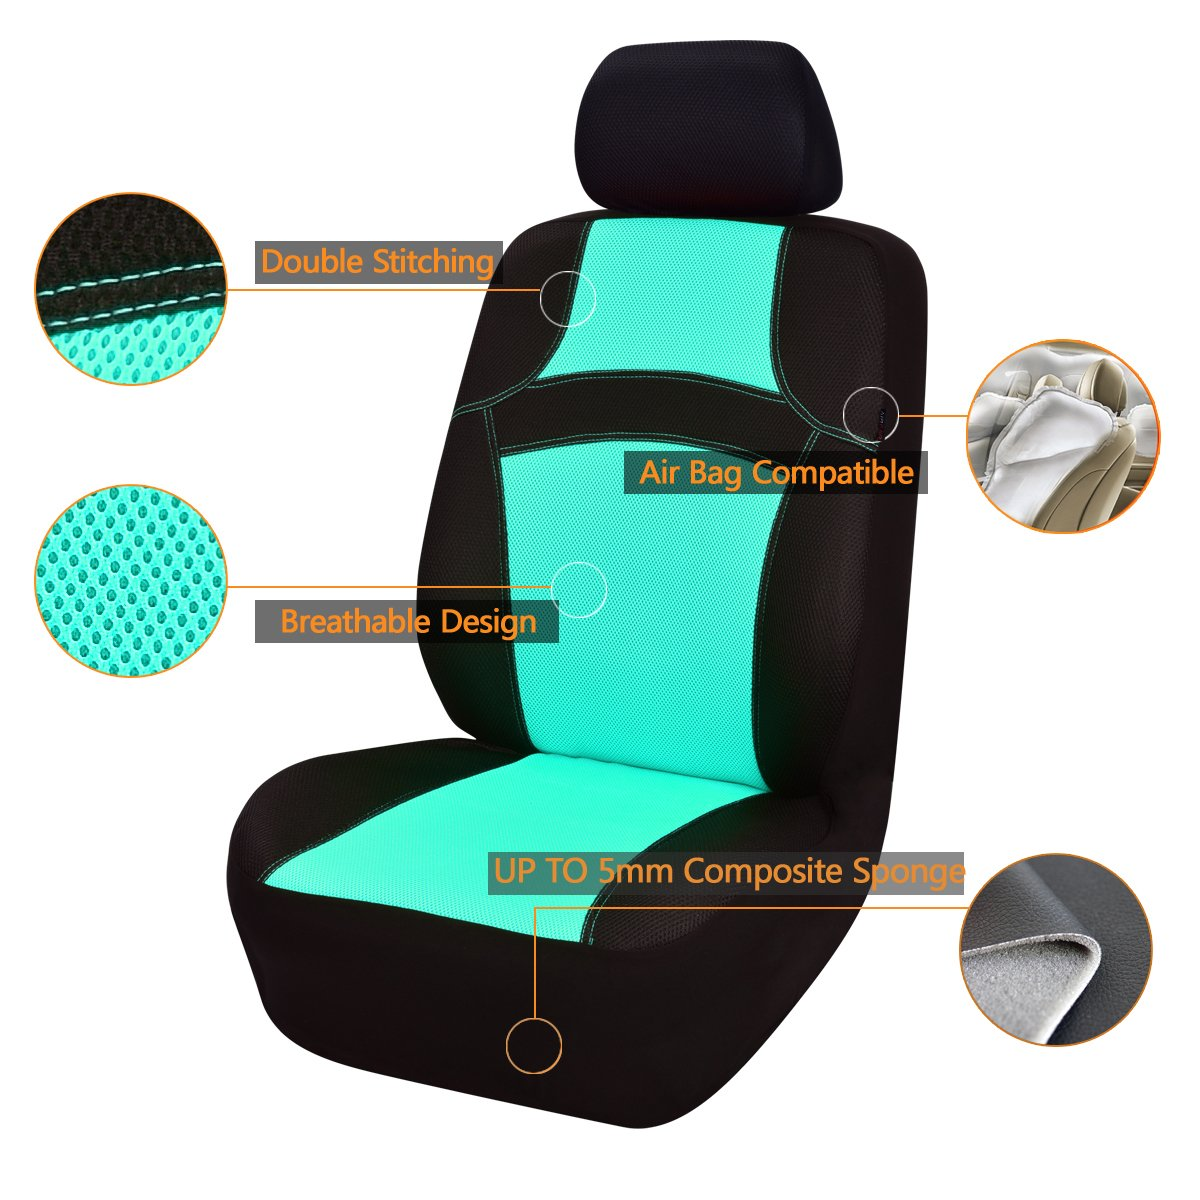 14pcs, Water blue 100/% Breathable With 5mm Composite Sponge Inside,Airbag Compatible CAR PASS RAINBOW Universal Fit Car Seat Cover NEW ARRIVAL